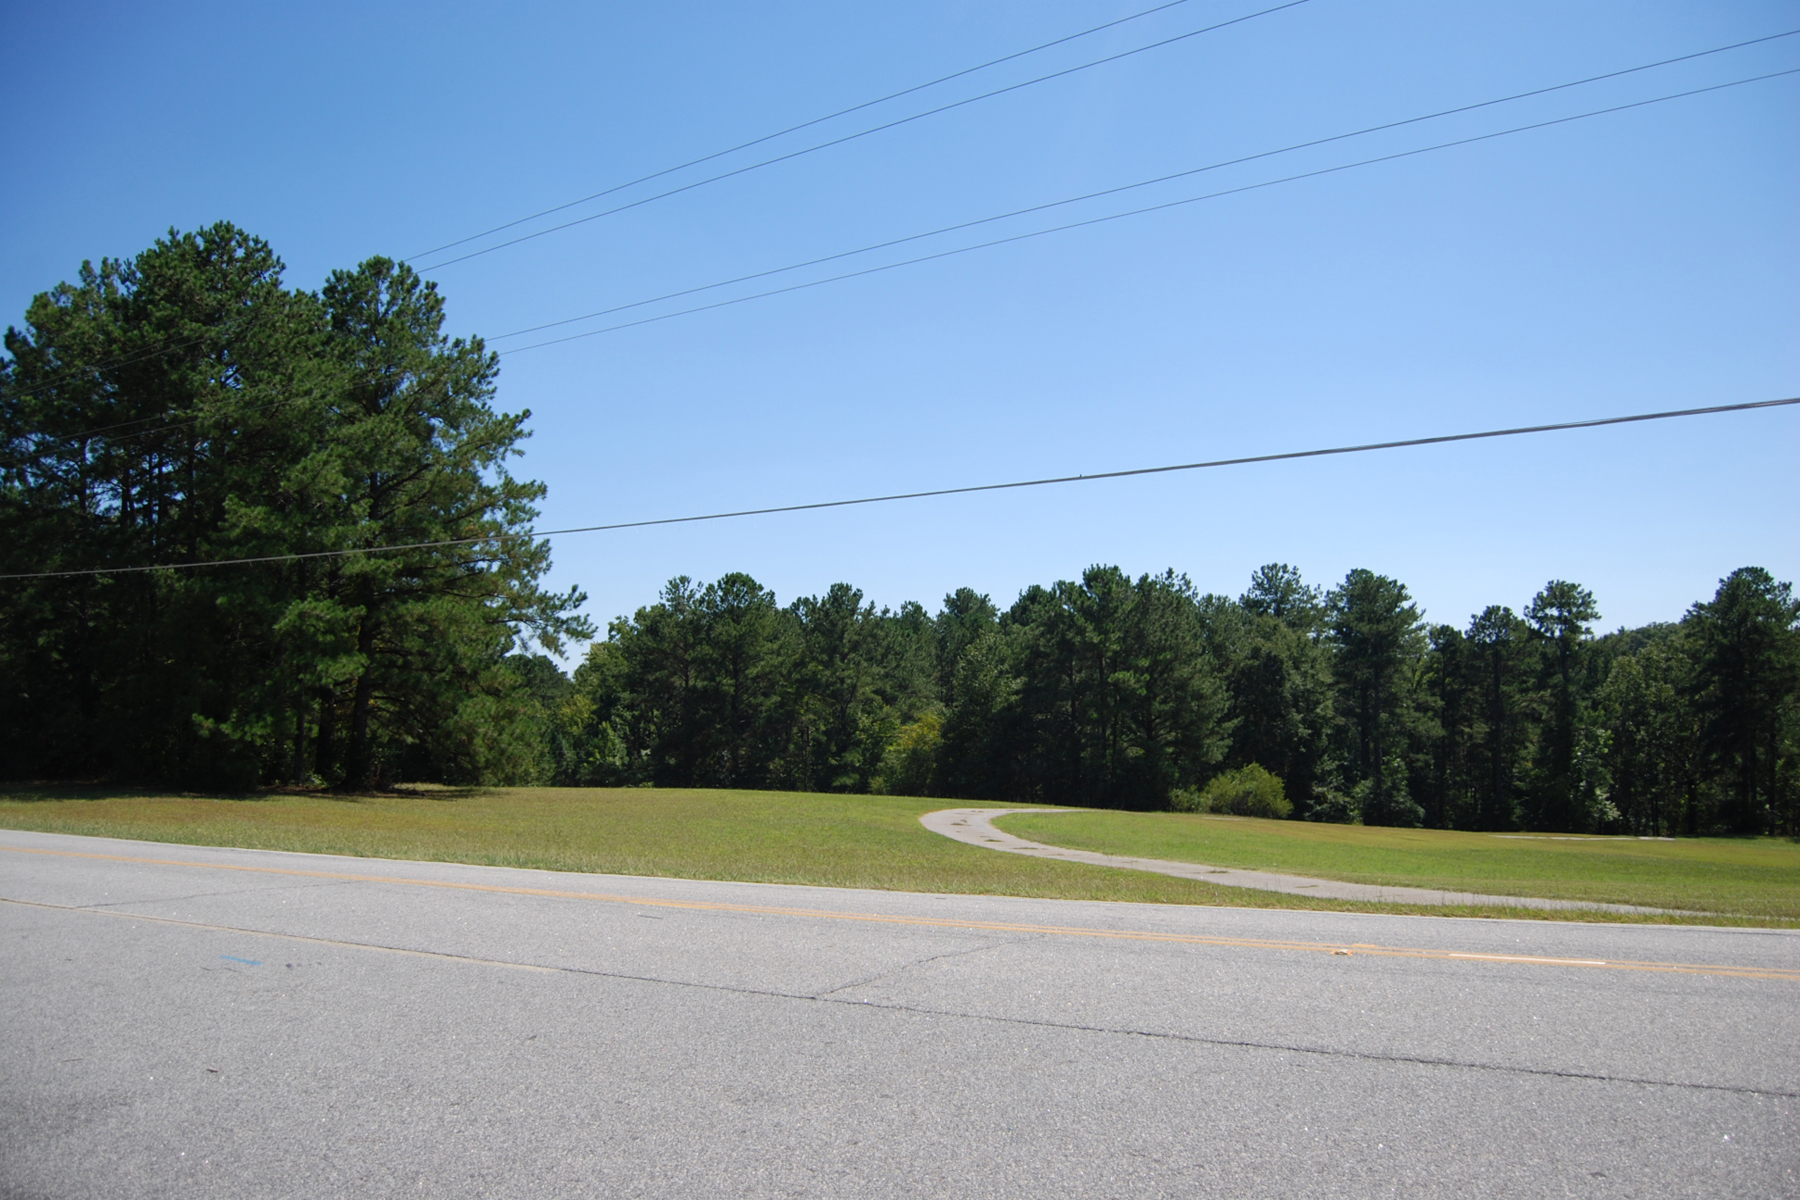 Земля для того Продажа на 3.83+/- Acres Near Piedmont Fayette Hospital 119 Old Norton Road, Fayetteville, Джорджия 30215 Соединенные Штаты